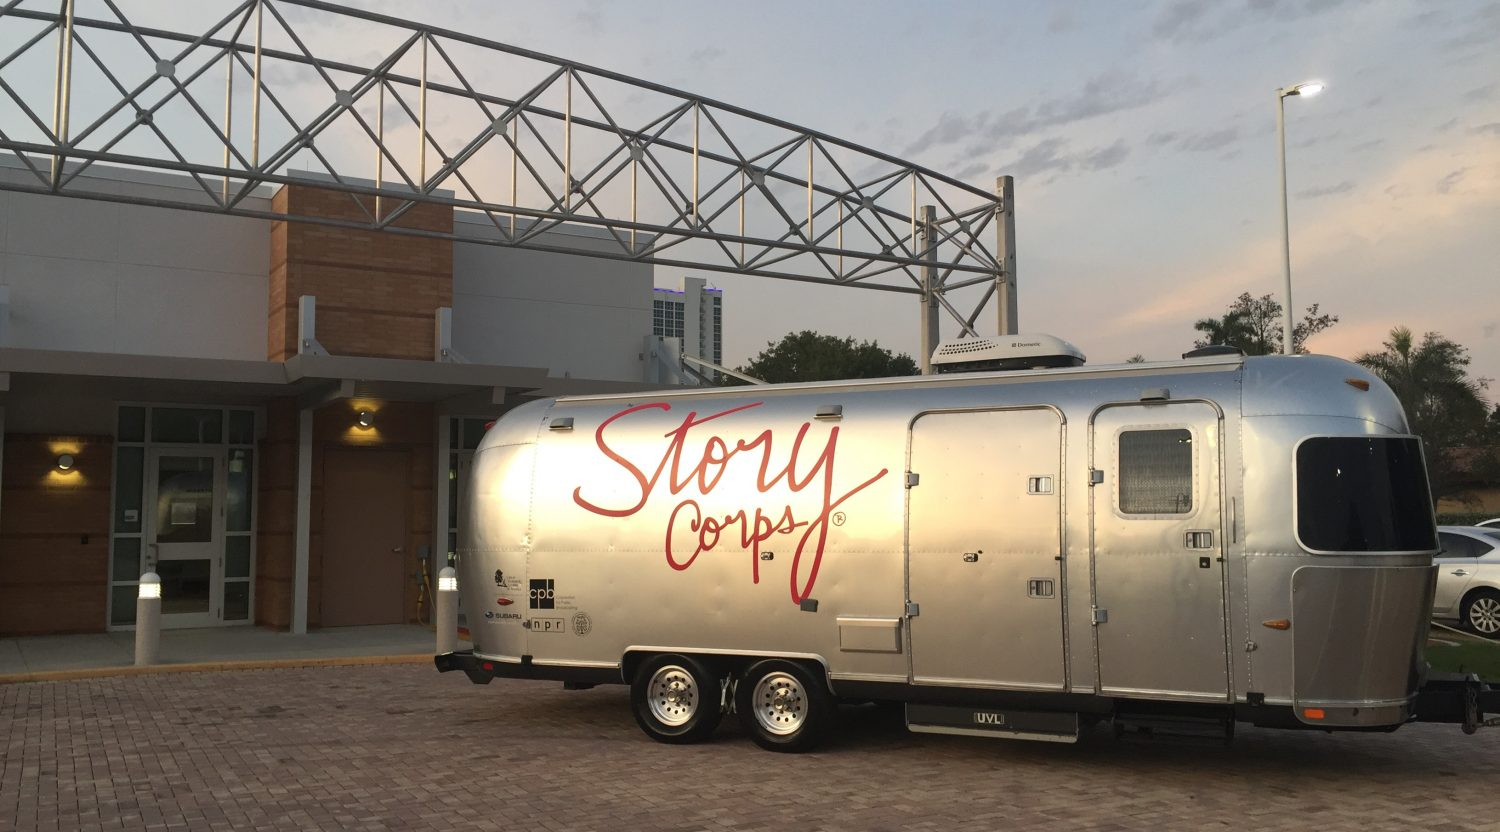 Announcing the 2017 StoryCorps MobileBooth Tour